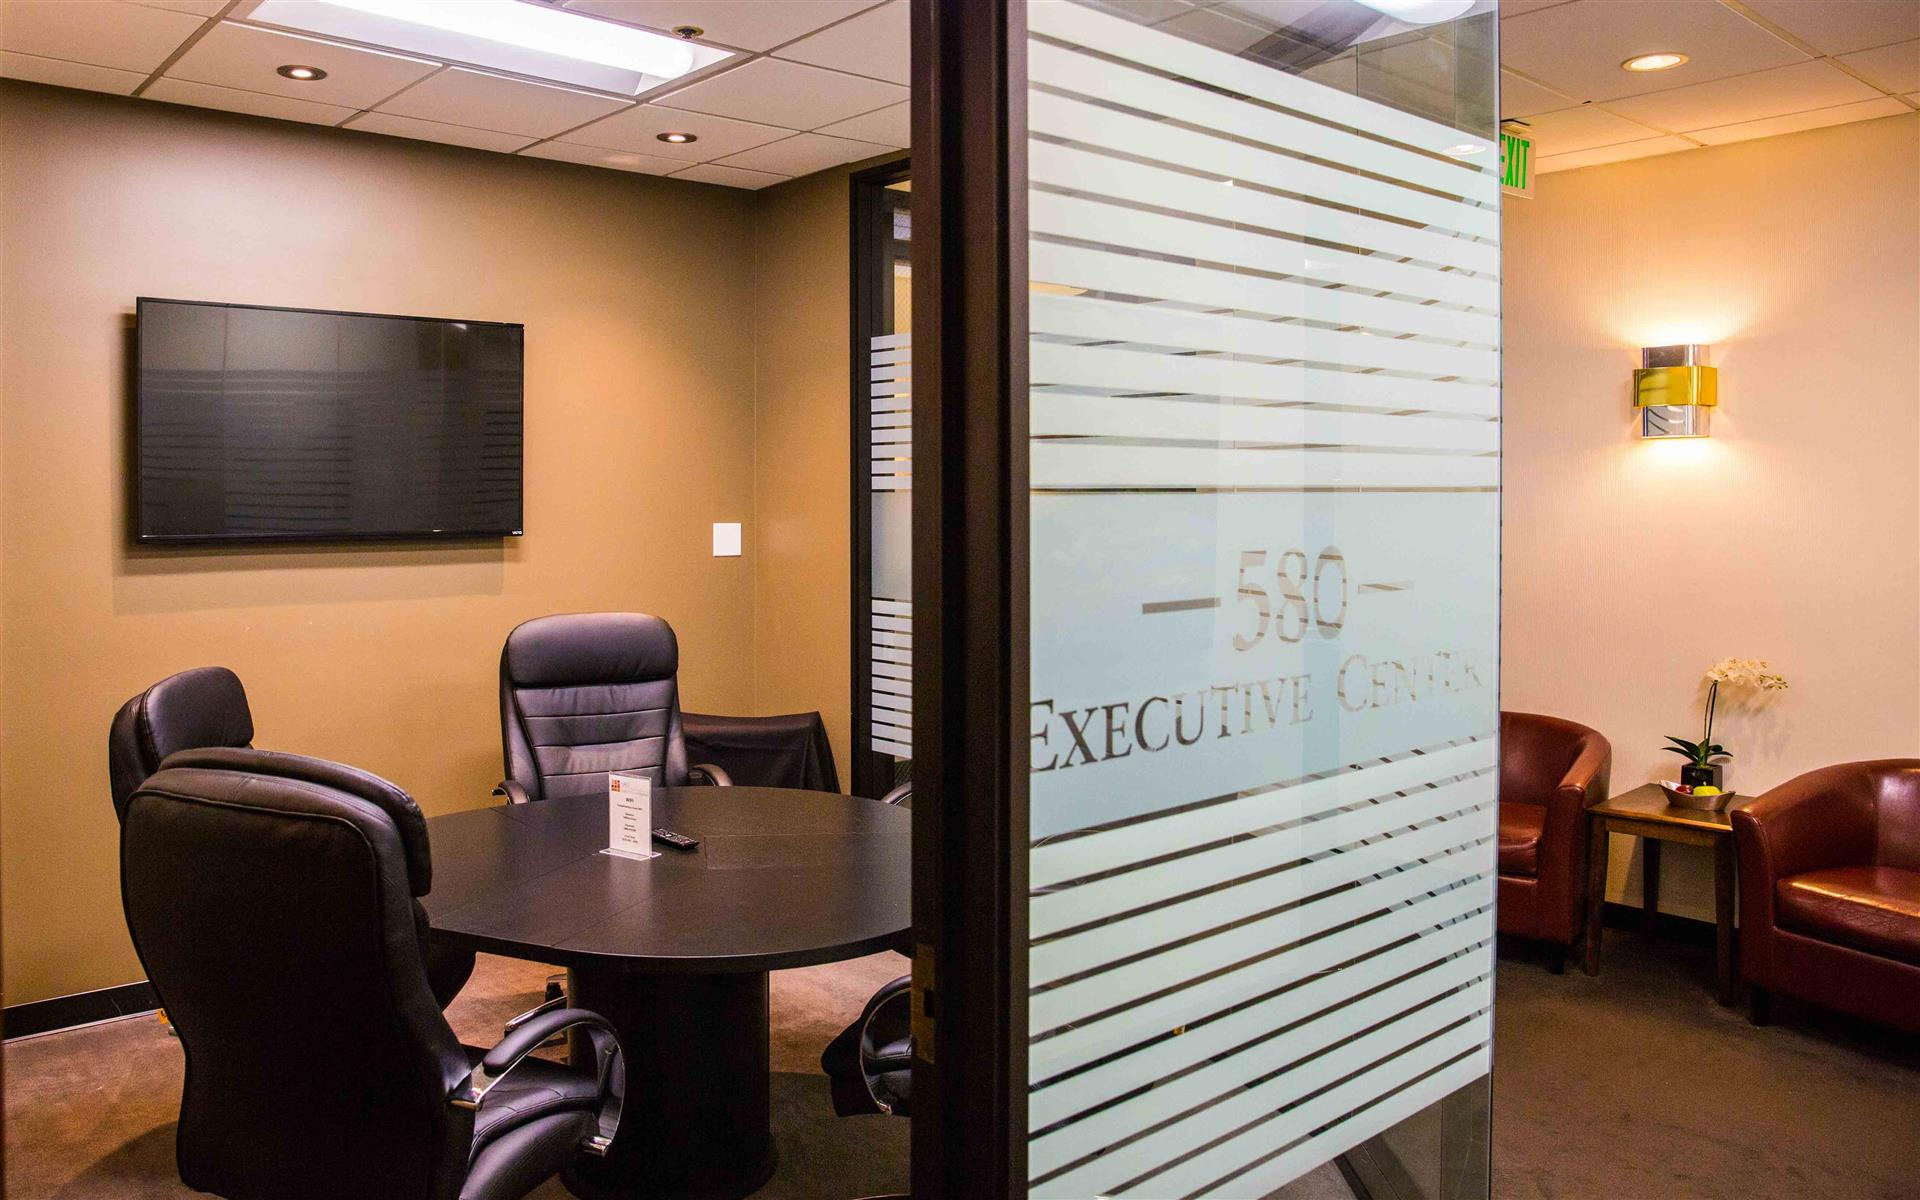 580 Executive Center - Glass Conference Room